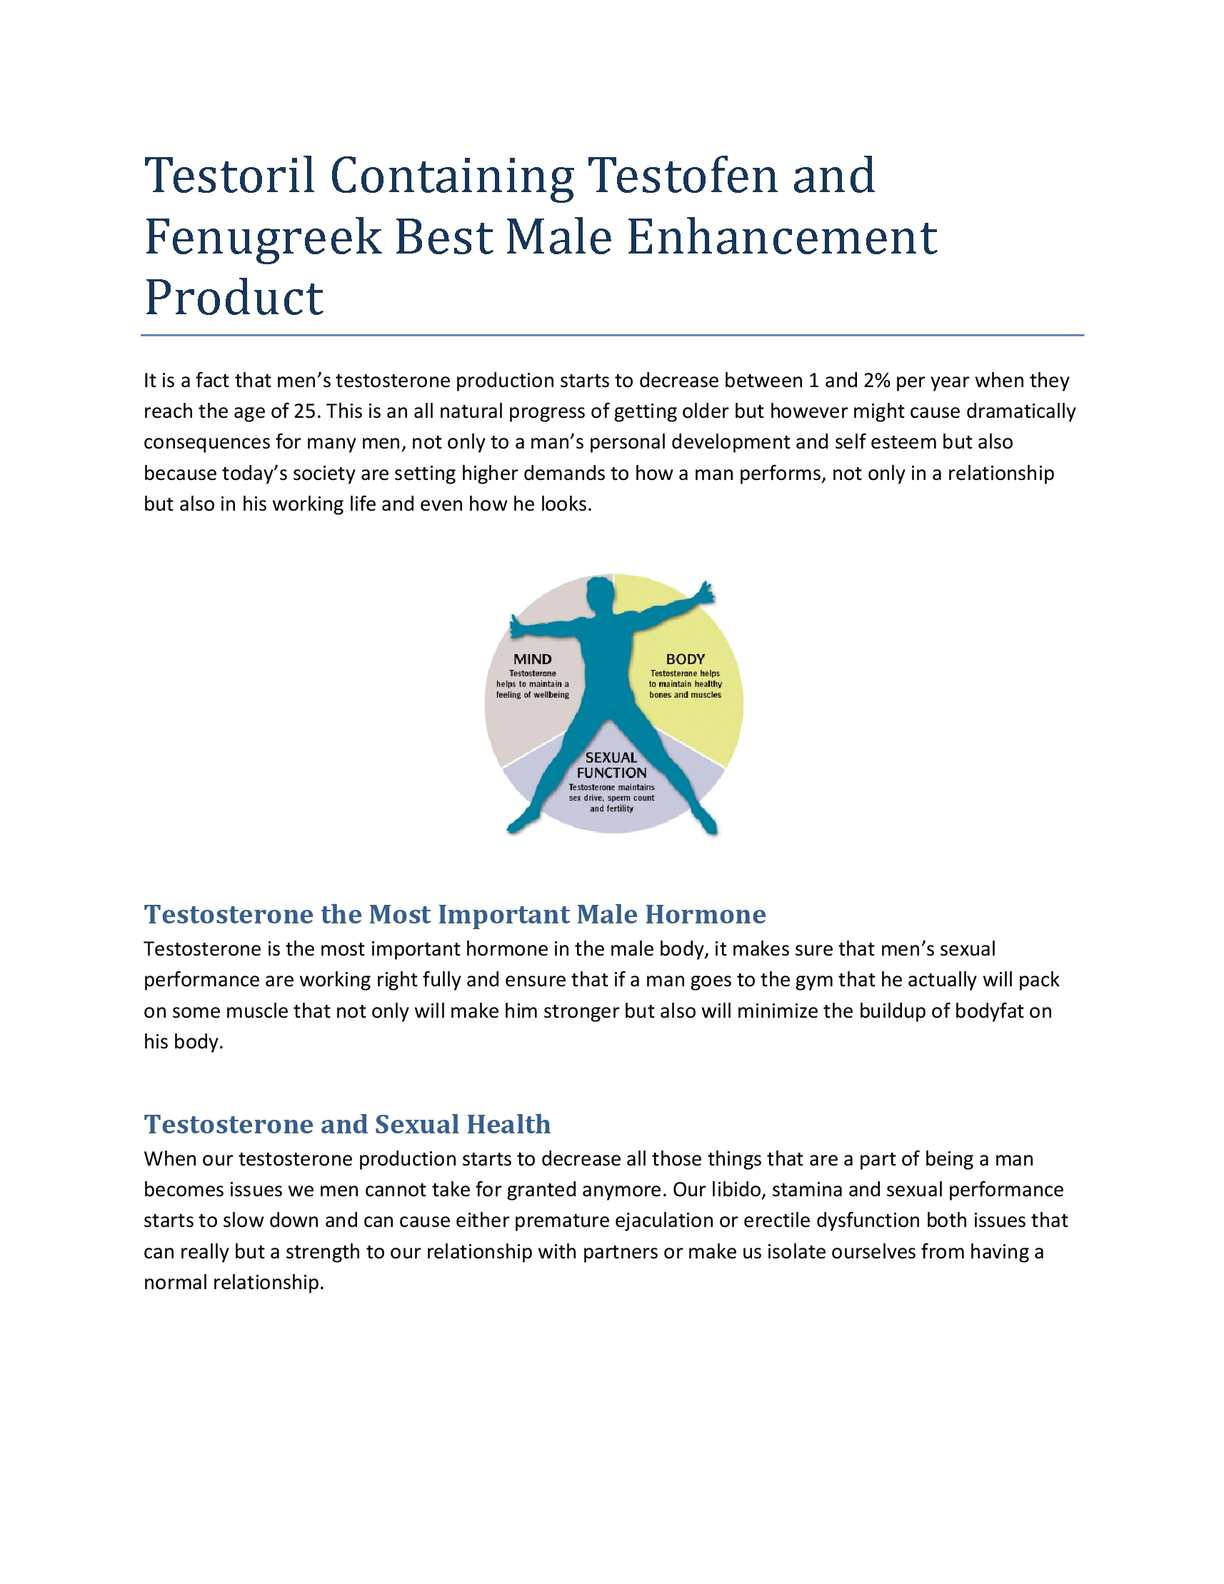 Testosterone is the most important male sex